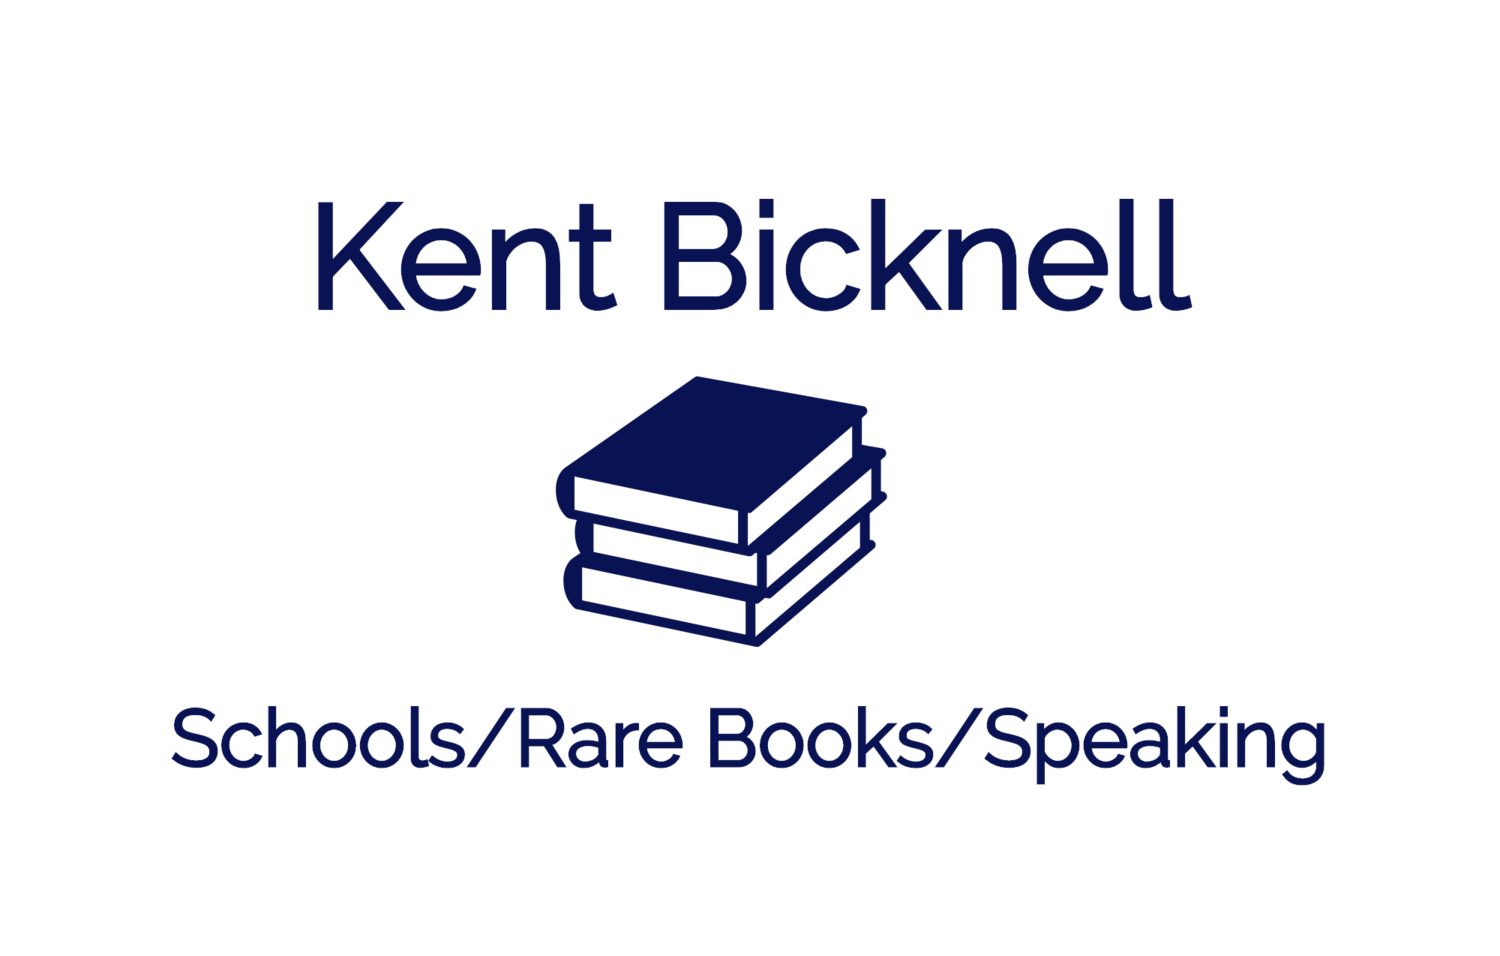 Kent Bicknell Consulting